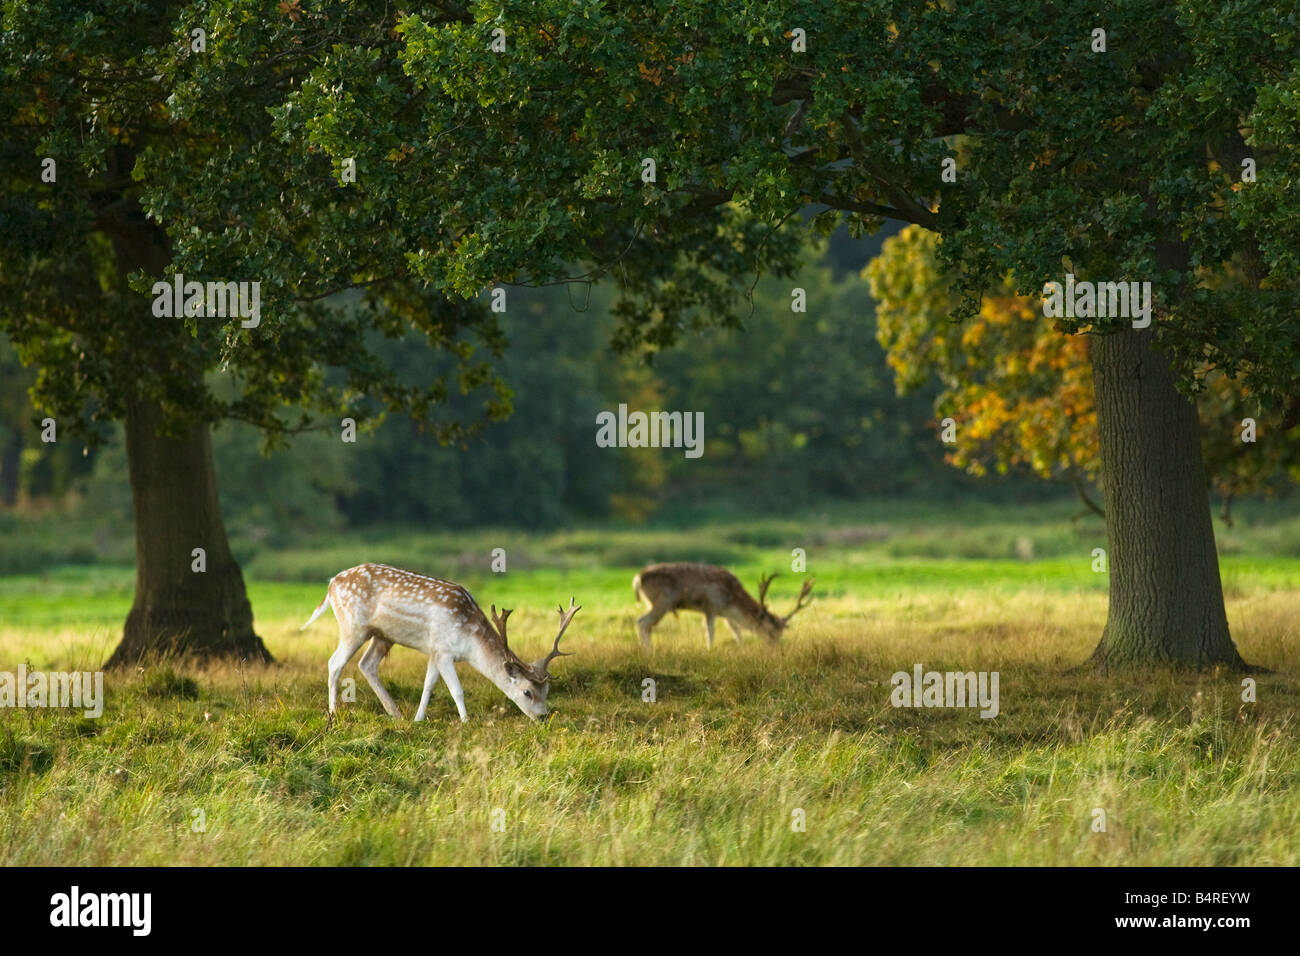 Fallow deer buck grazing in english meadow and woodland Shropshire England UK United Kingdom GB Great Britain British - Stock Image